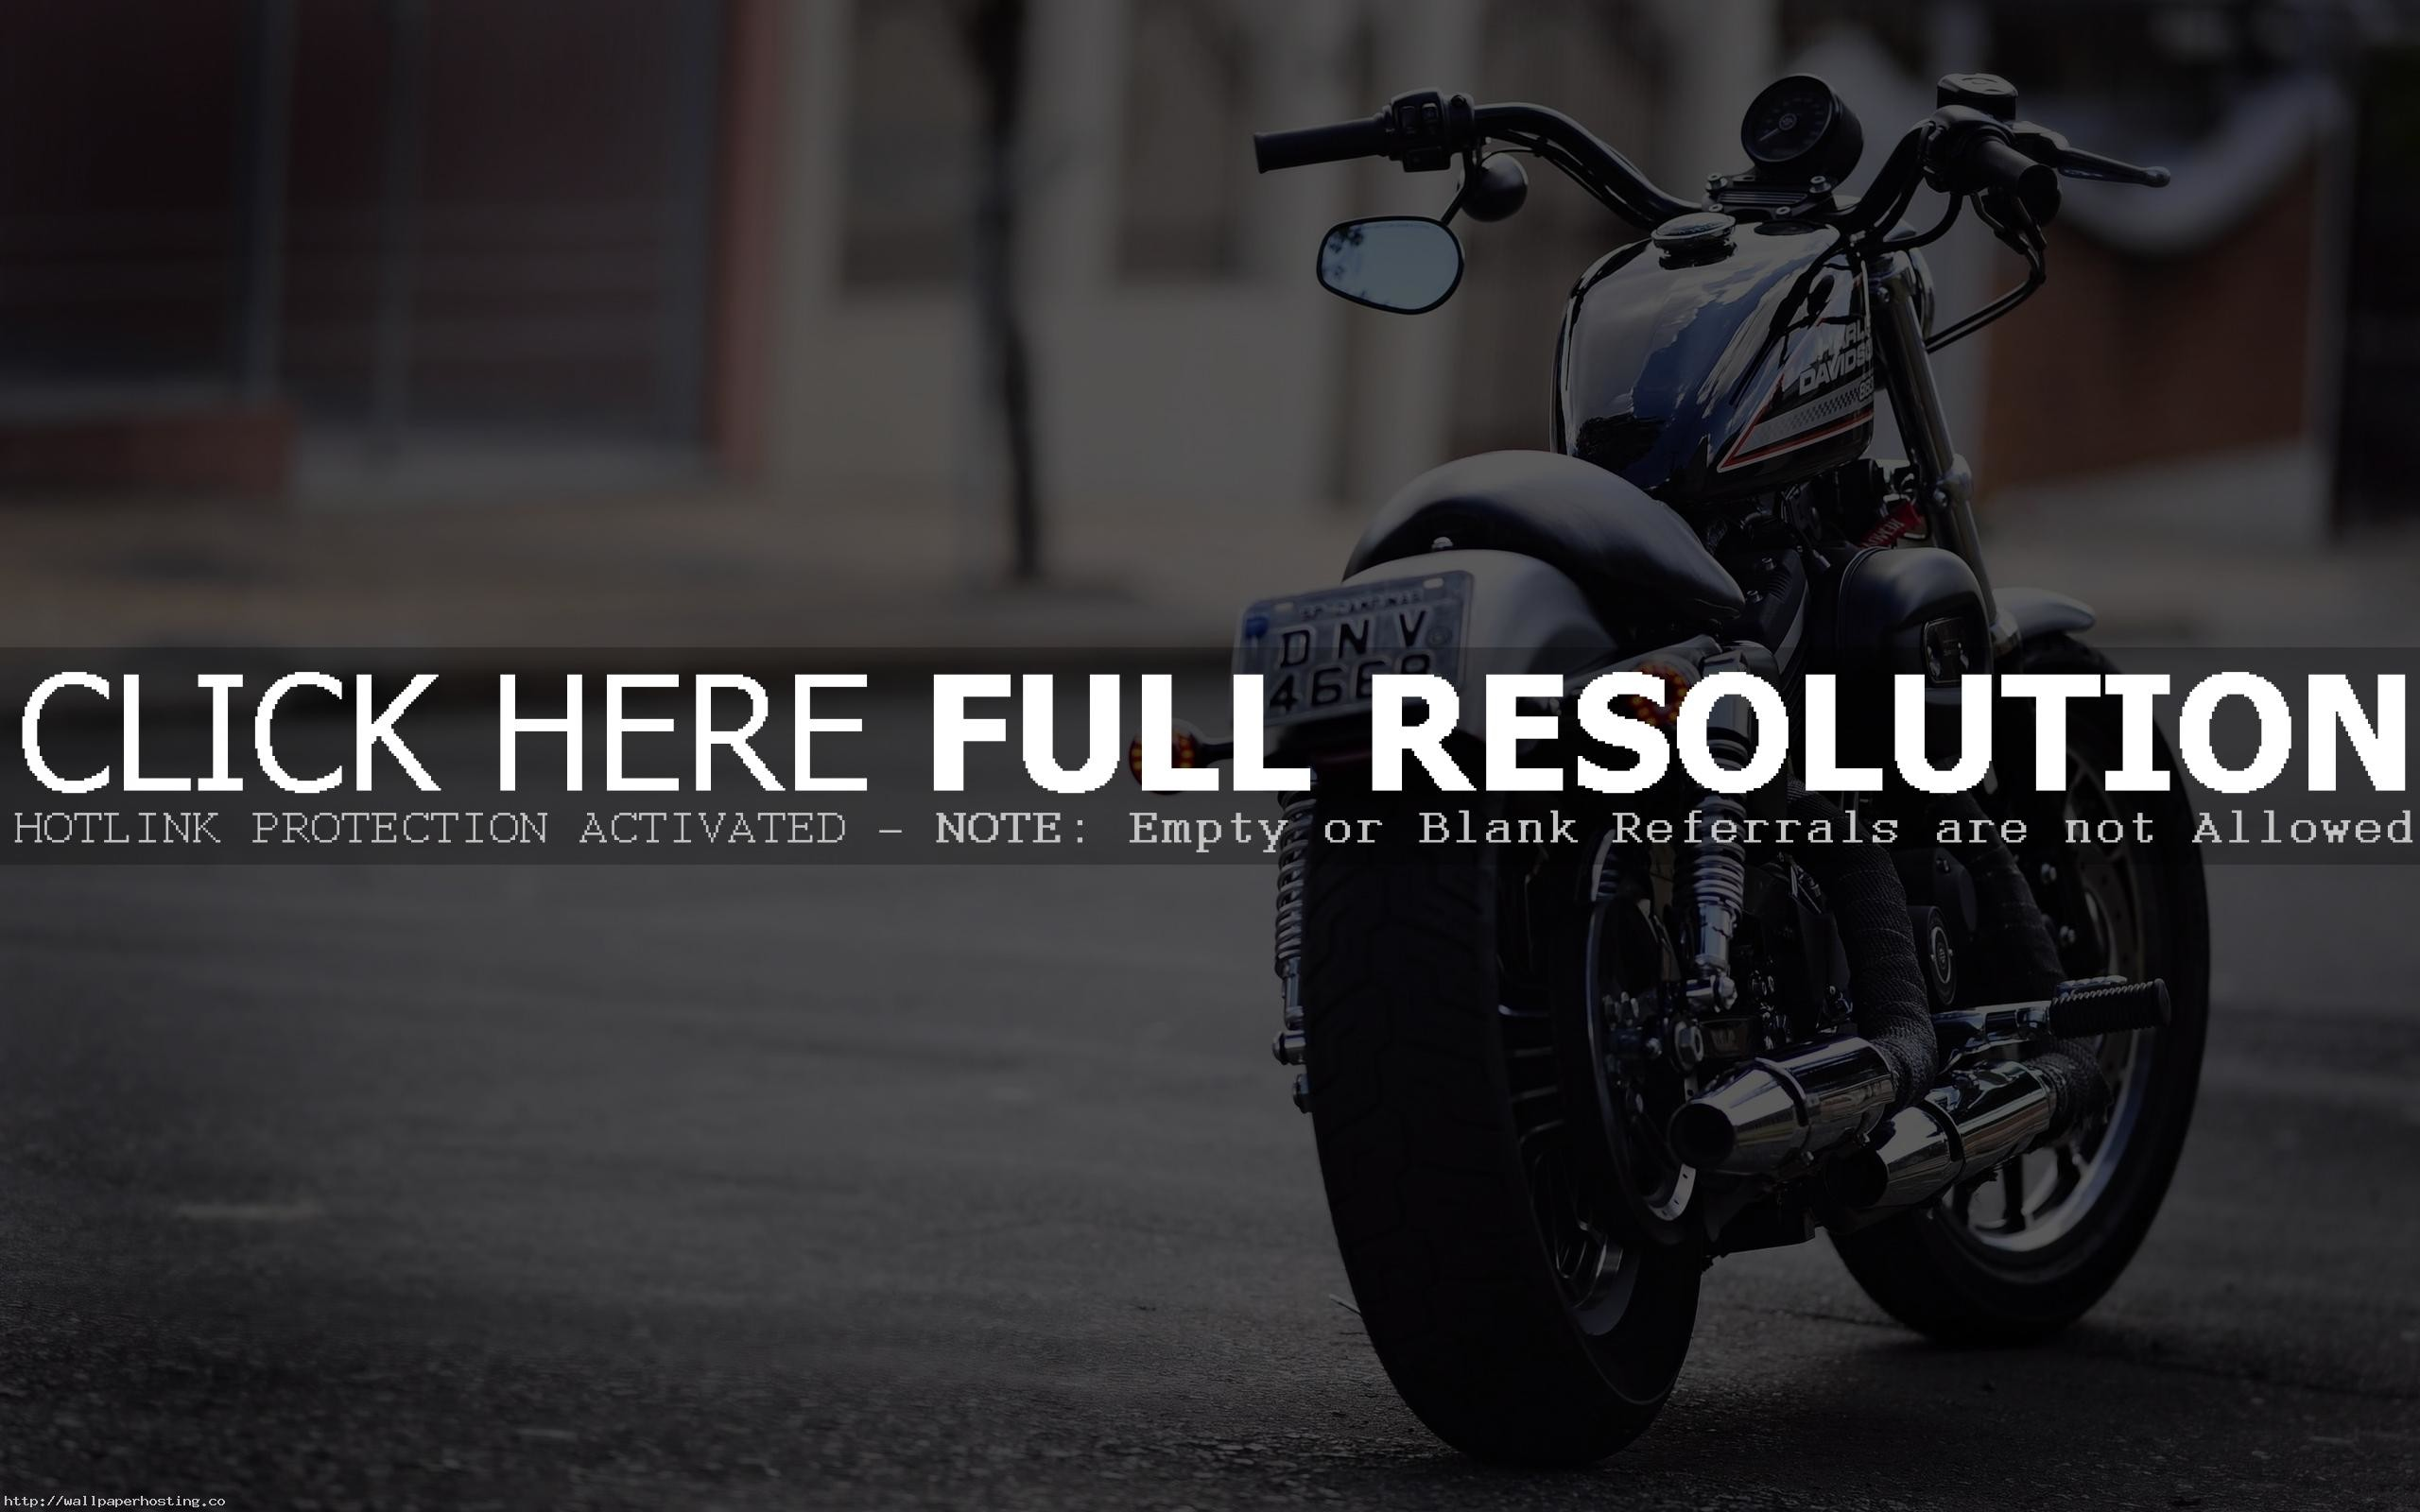 2560x1600 harley-davidson-883-motorcycle-hd-wallpaper -background-uhd-2k-4k-5k-2015-2016-tablet-phone-mobile-pc-computer- Motorcycles-Hosting